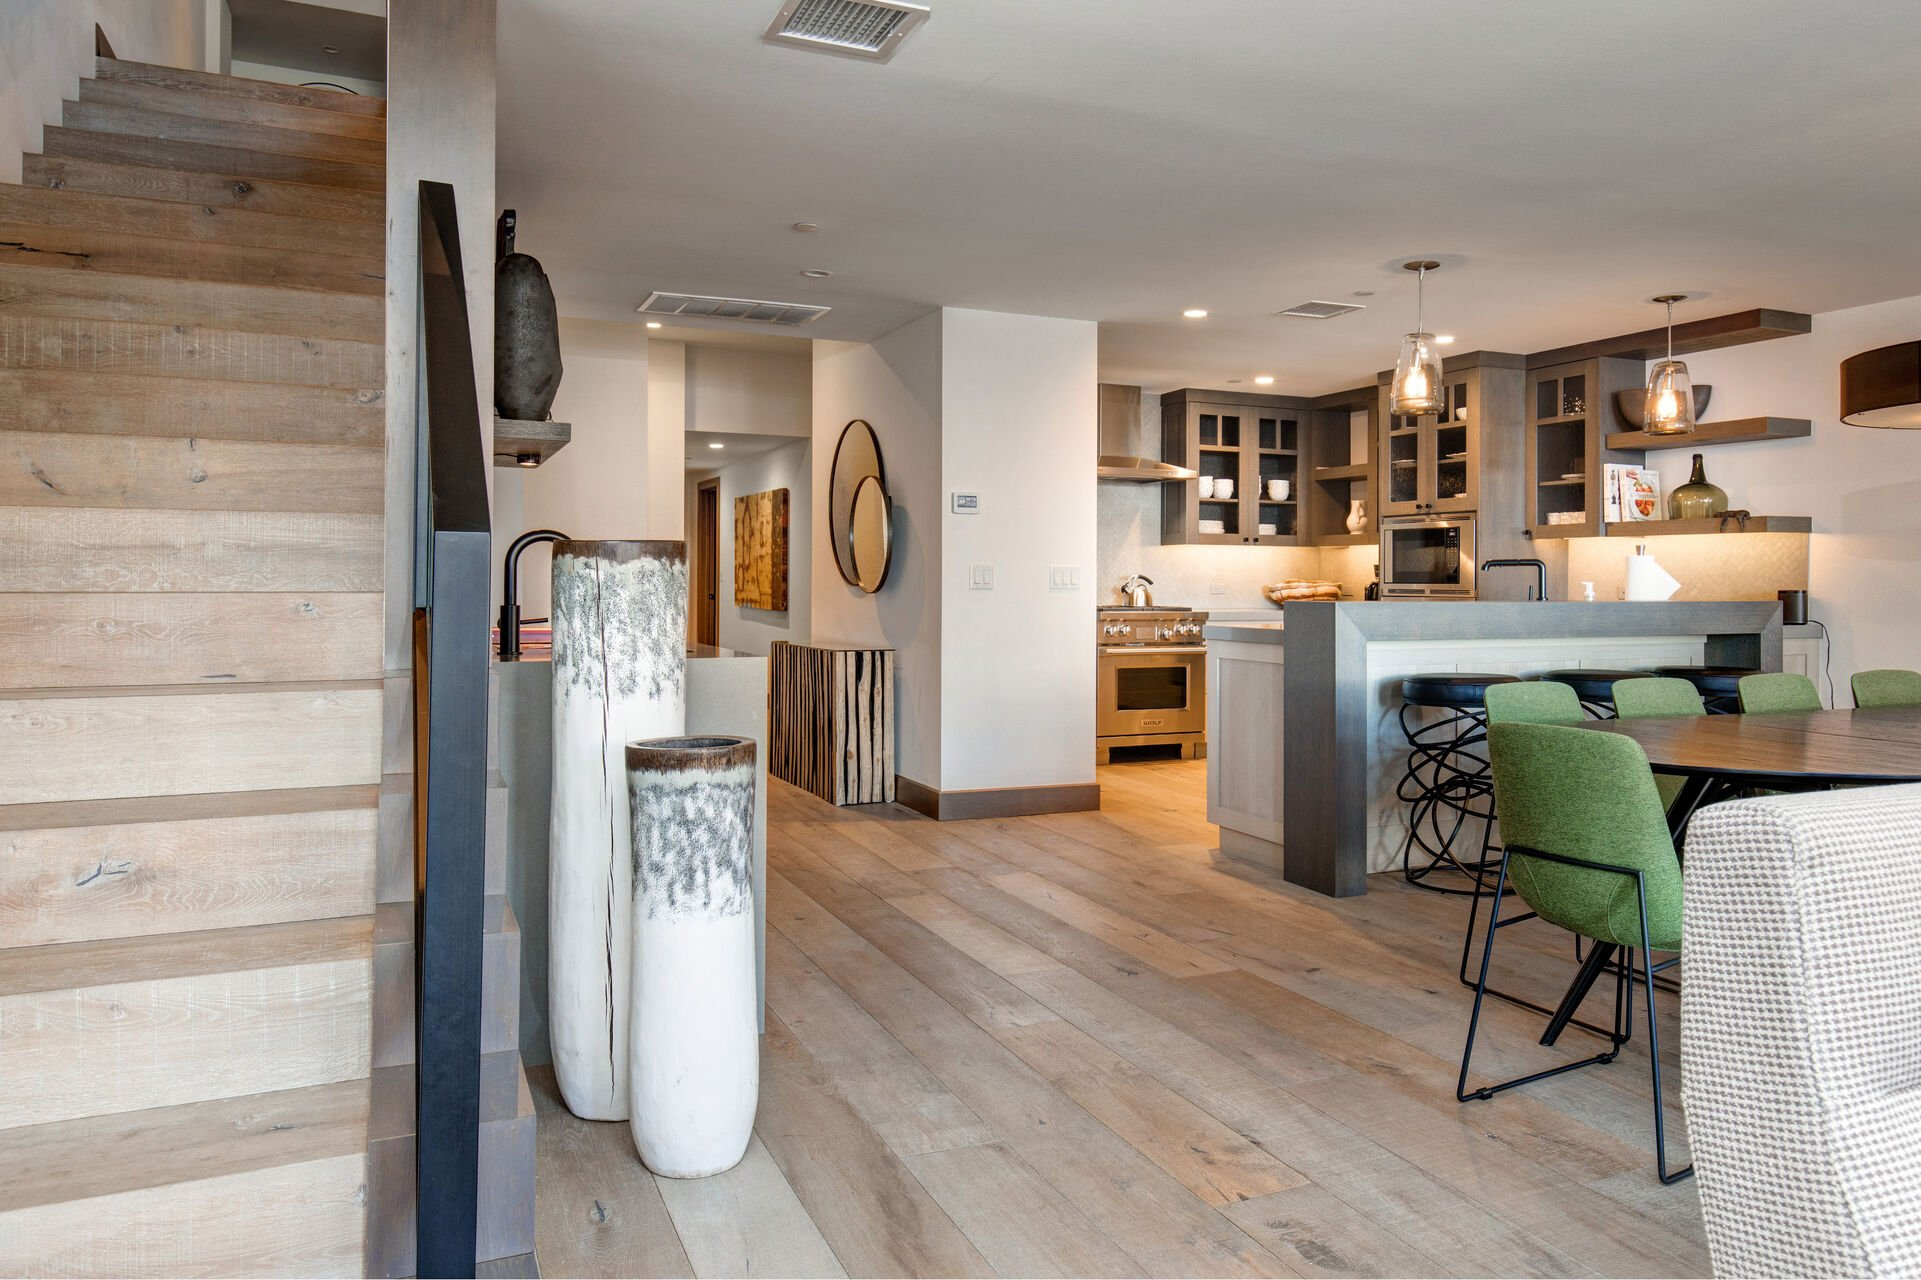 Dining Area, Kitchen Bar Seating and Wet Bar with Wine Fridge